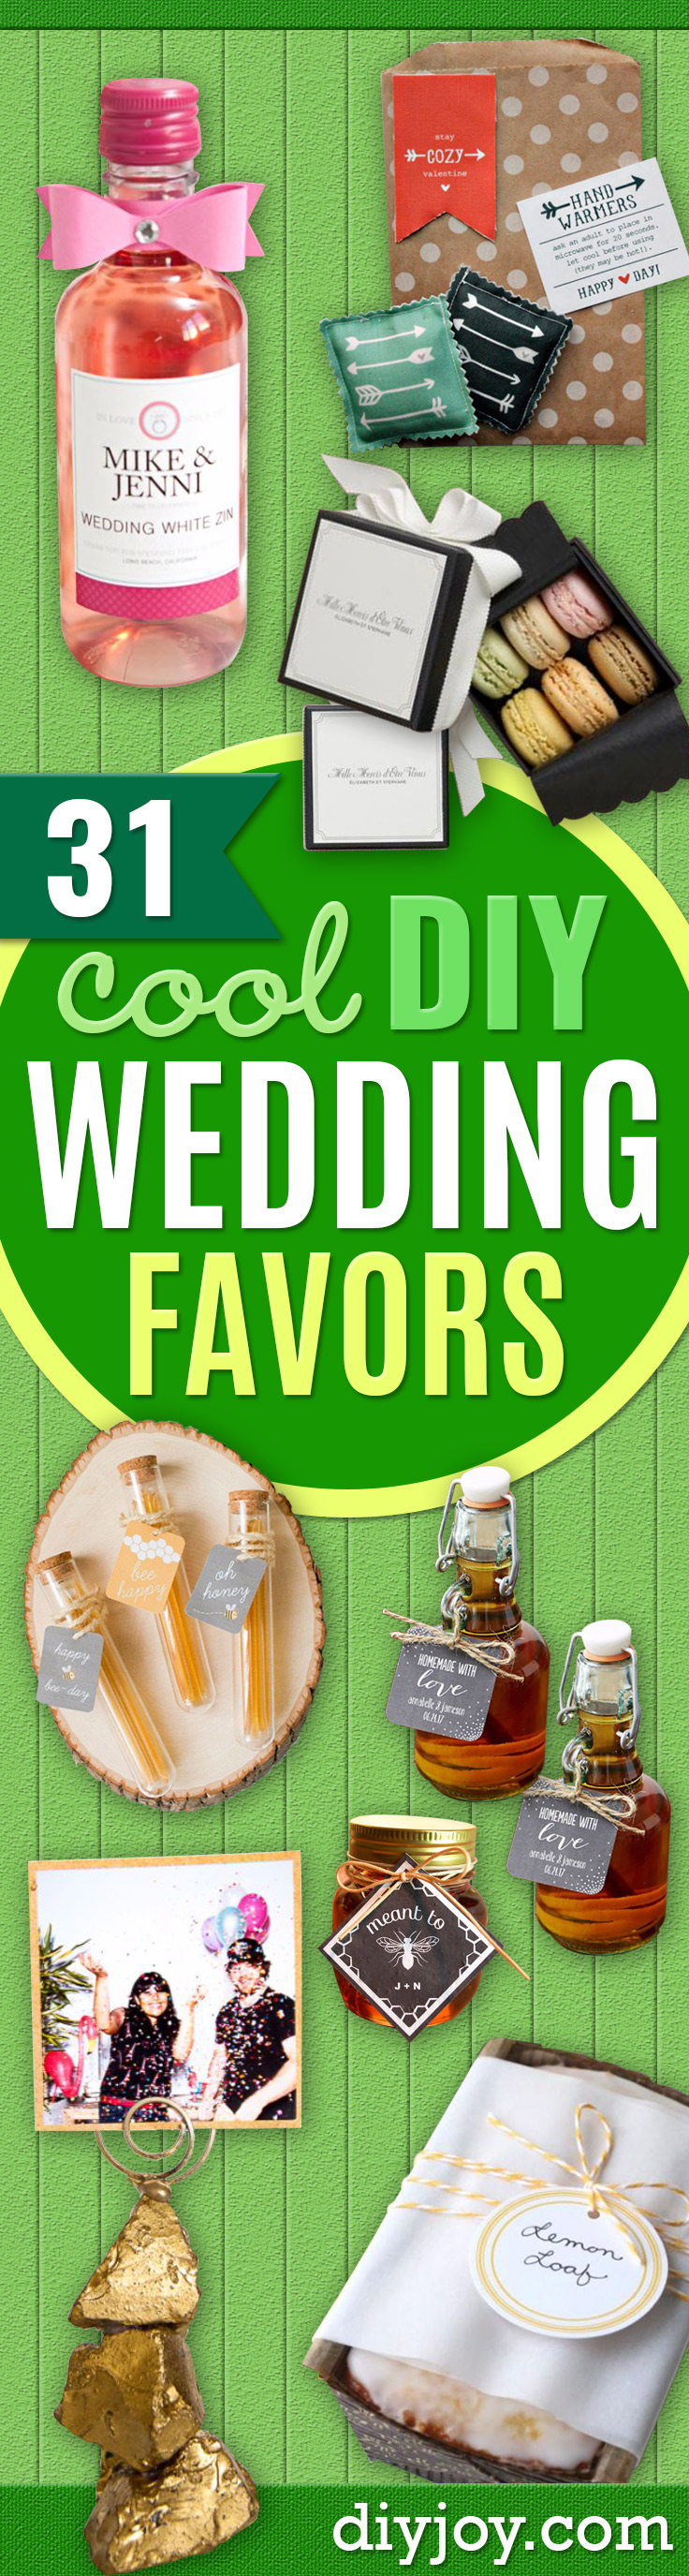 diy wedding favors to make- Do It Yourself Ideas for Brides and easy wedding favor DIY idea - Step by Step Tutorials for Making Mason Jars, Rustic Crafts, Flowers, Small Gifts, Modern Decor, Vintage - cheap wedding favor ideas